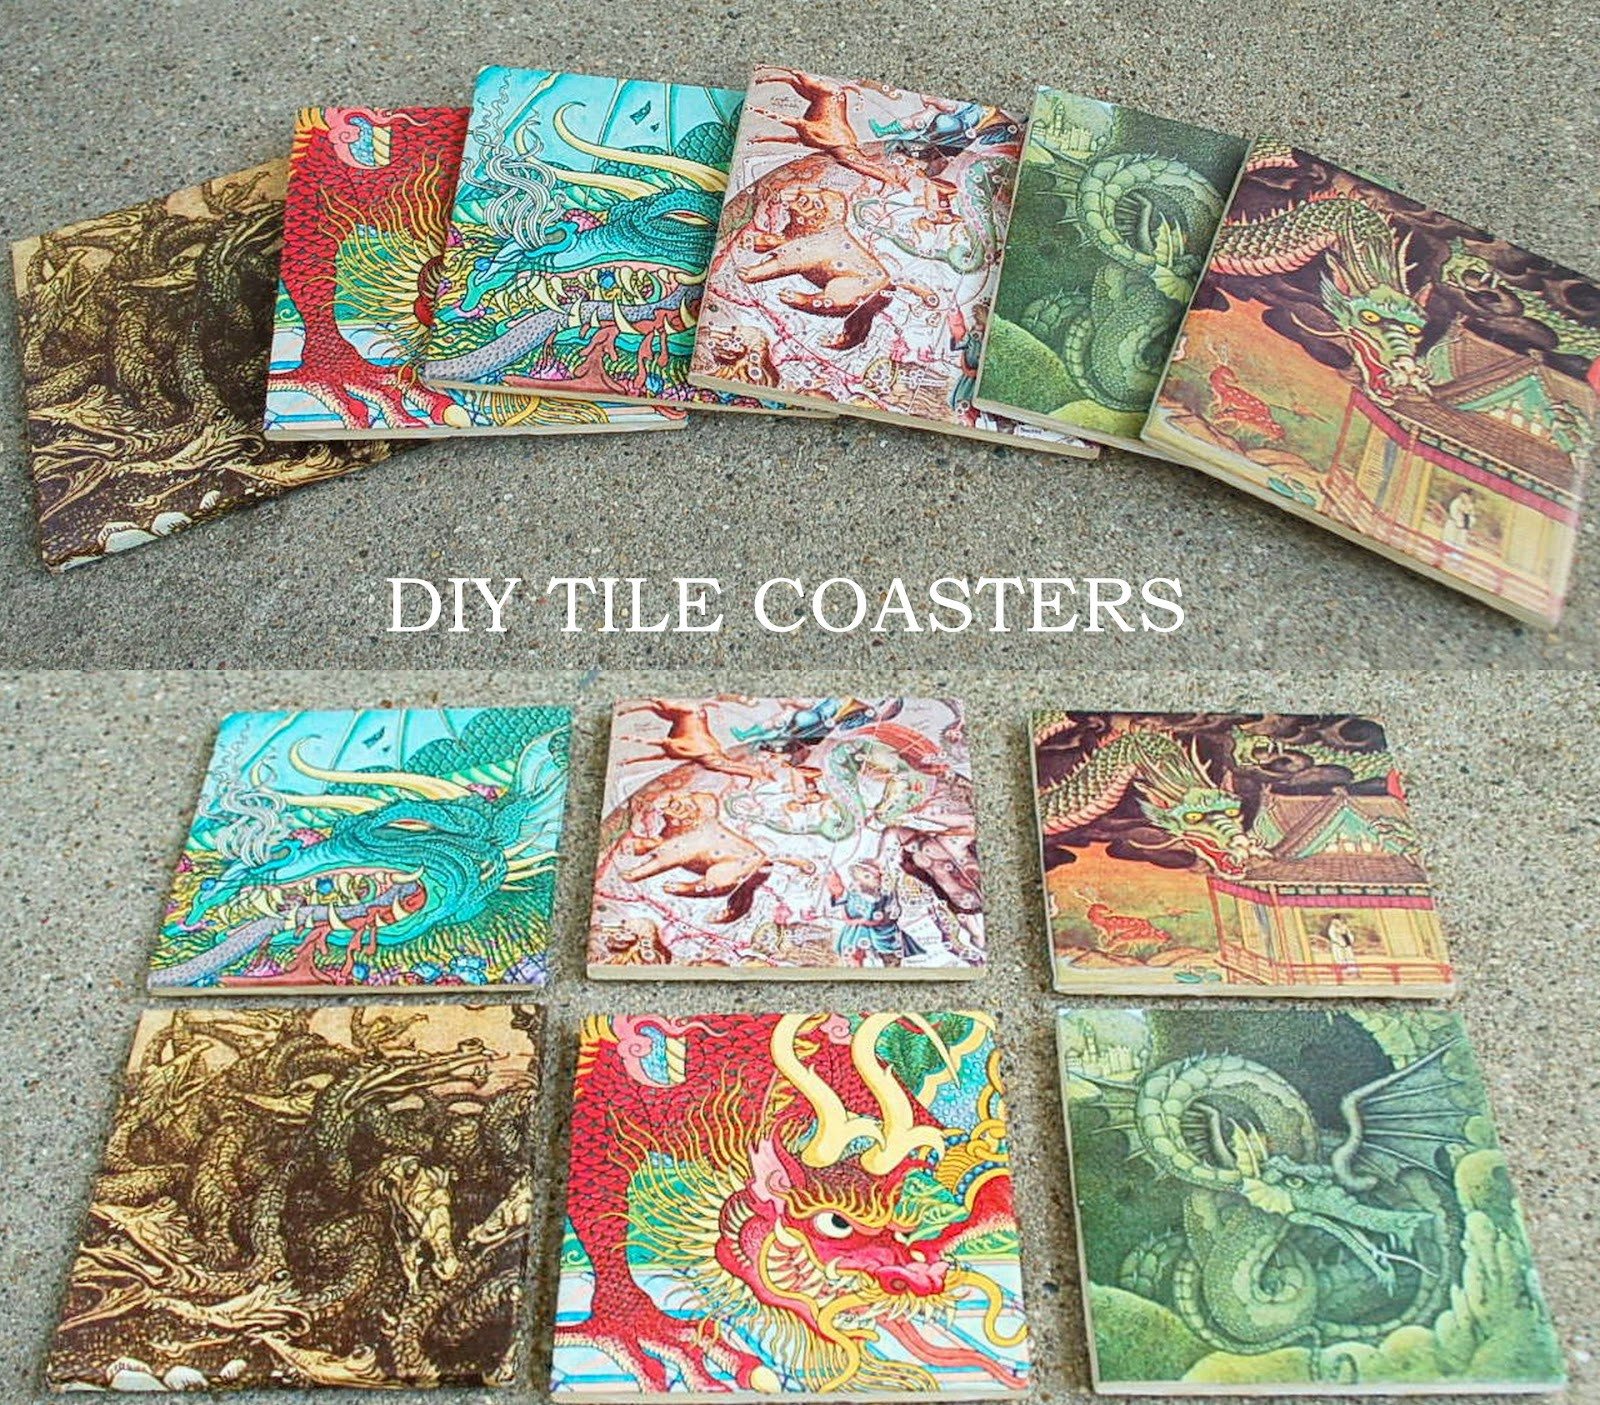 Best ideas about DIY Coaster Tiles . Save or Pin SOVRIN BLOG DIY TILE COASTERS Now.